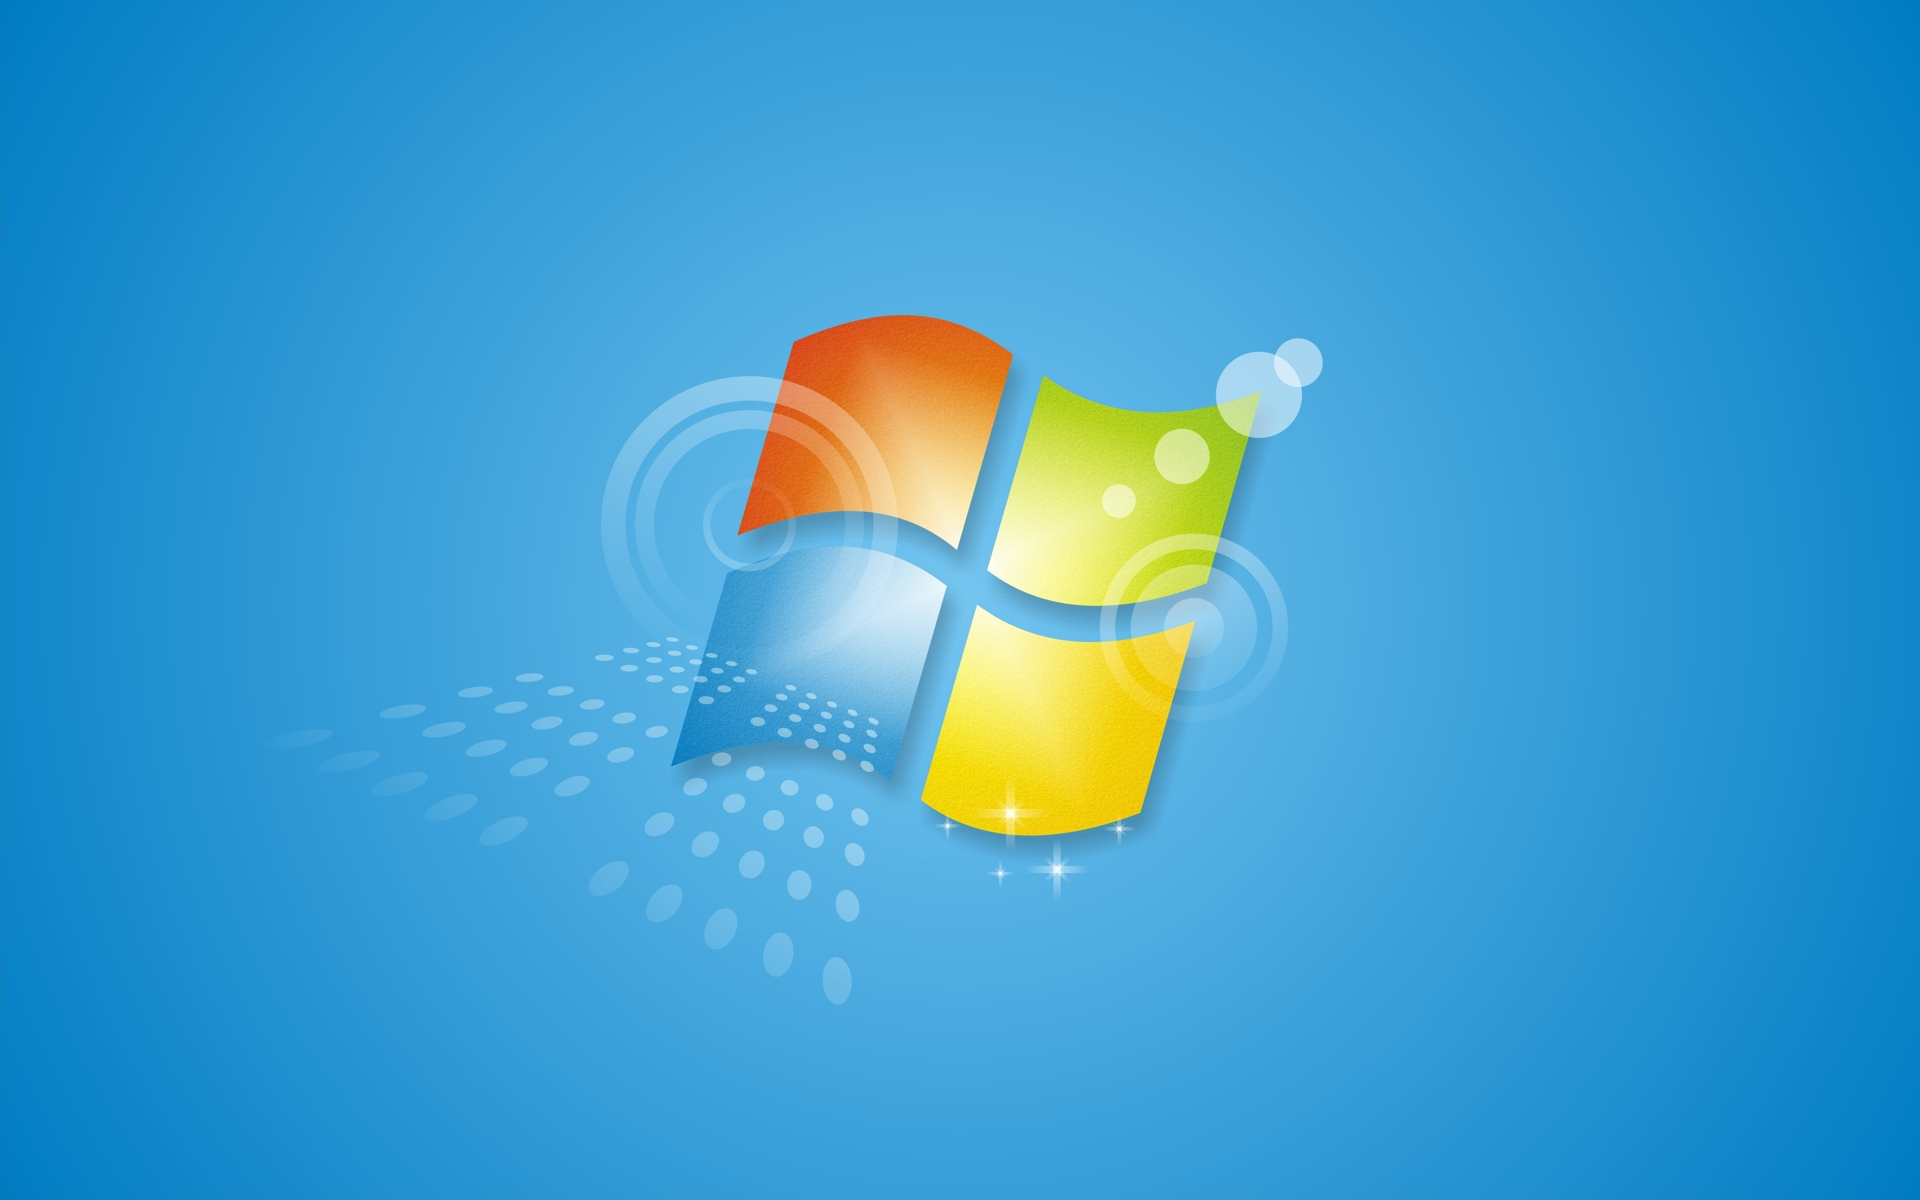 Windows 7 Alternate Blue Wallpapers HD Wallpapers 1920x1200